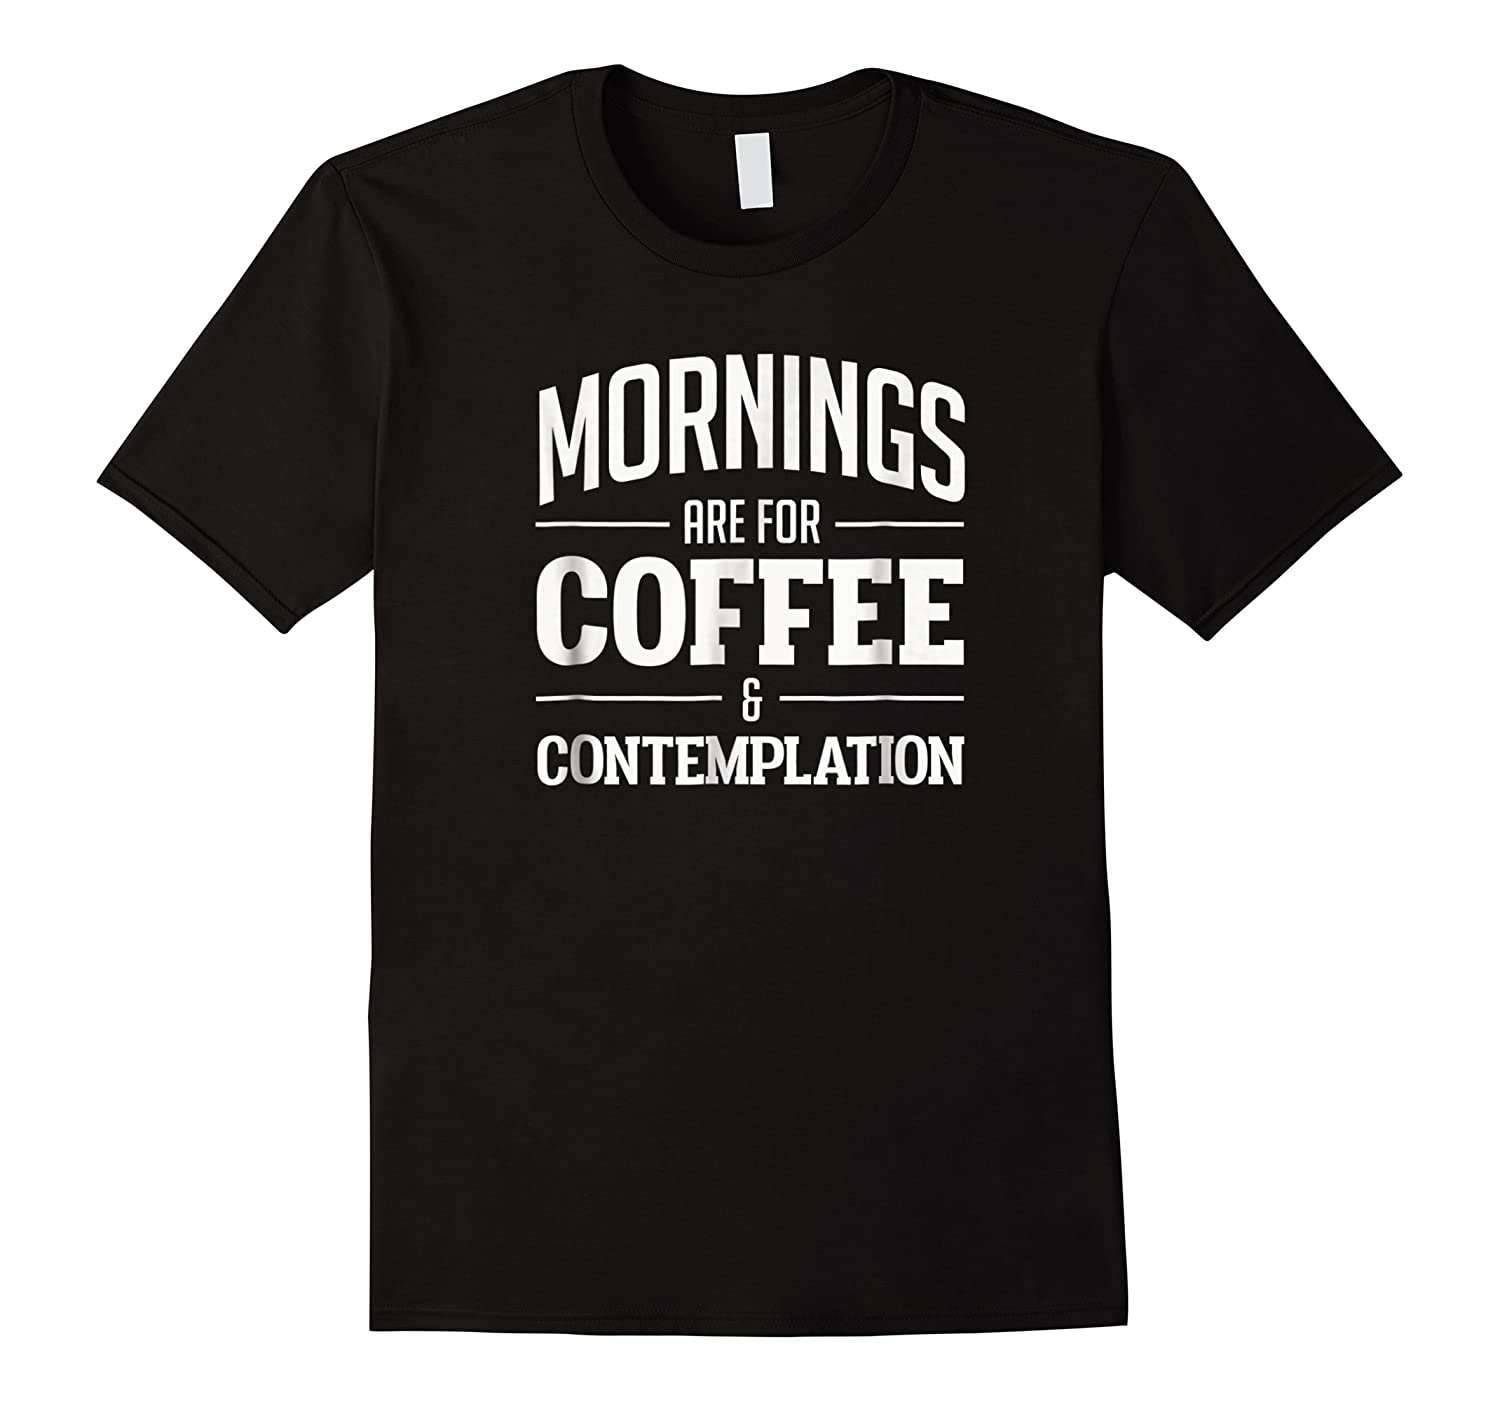 Netflix Stranger Things Mornings Are For Coffee Shirts